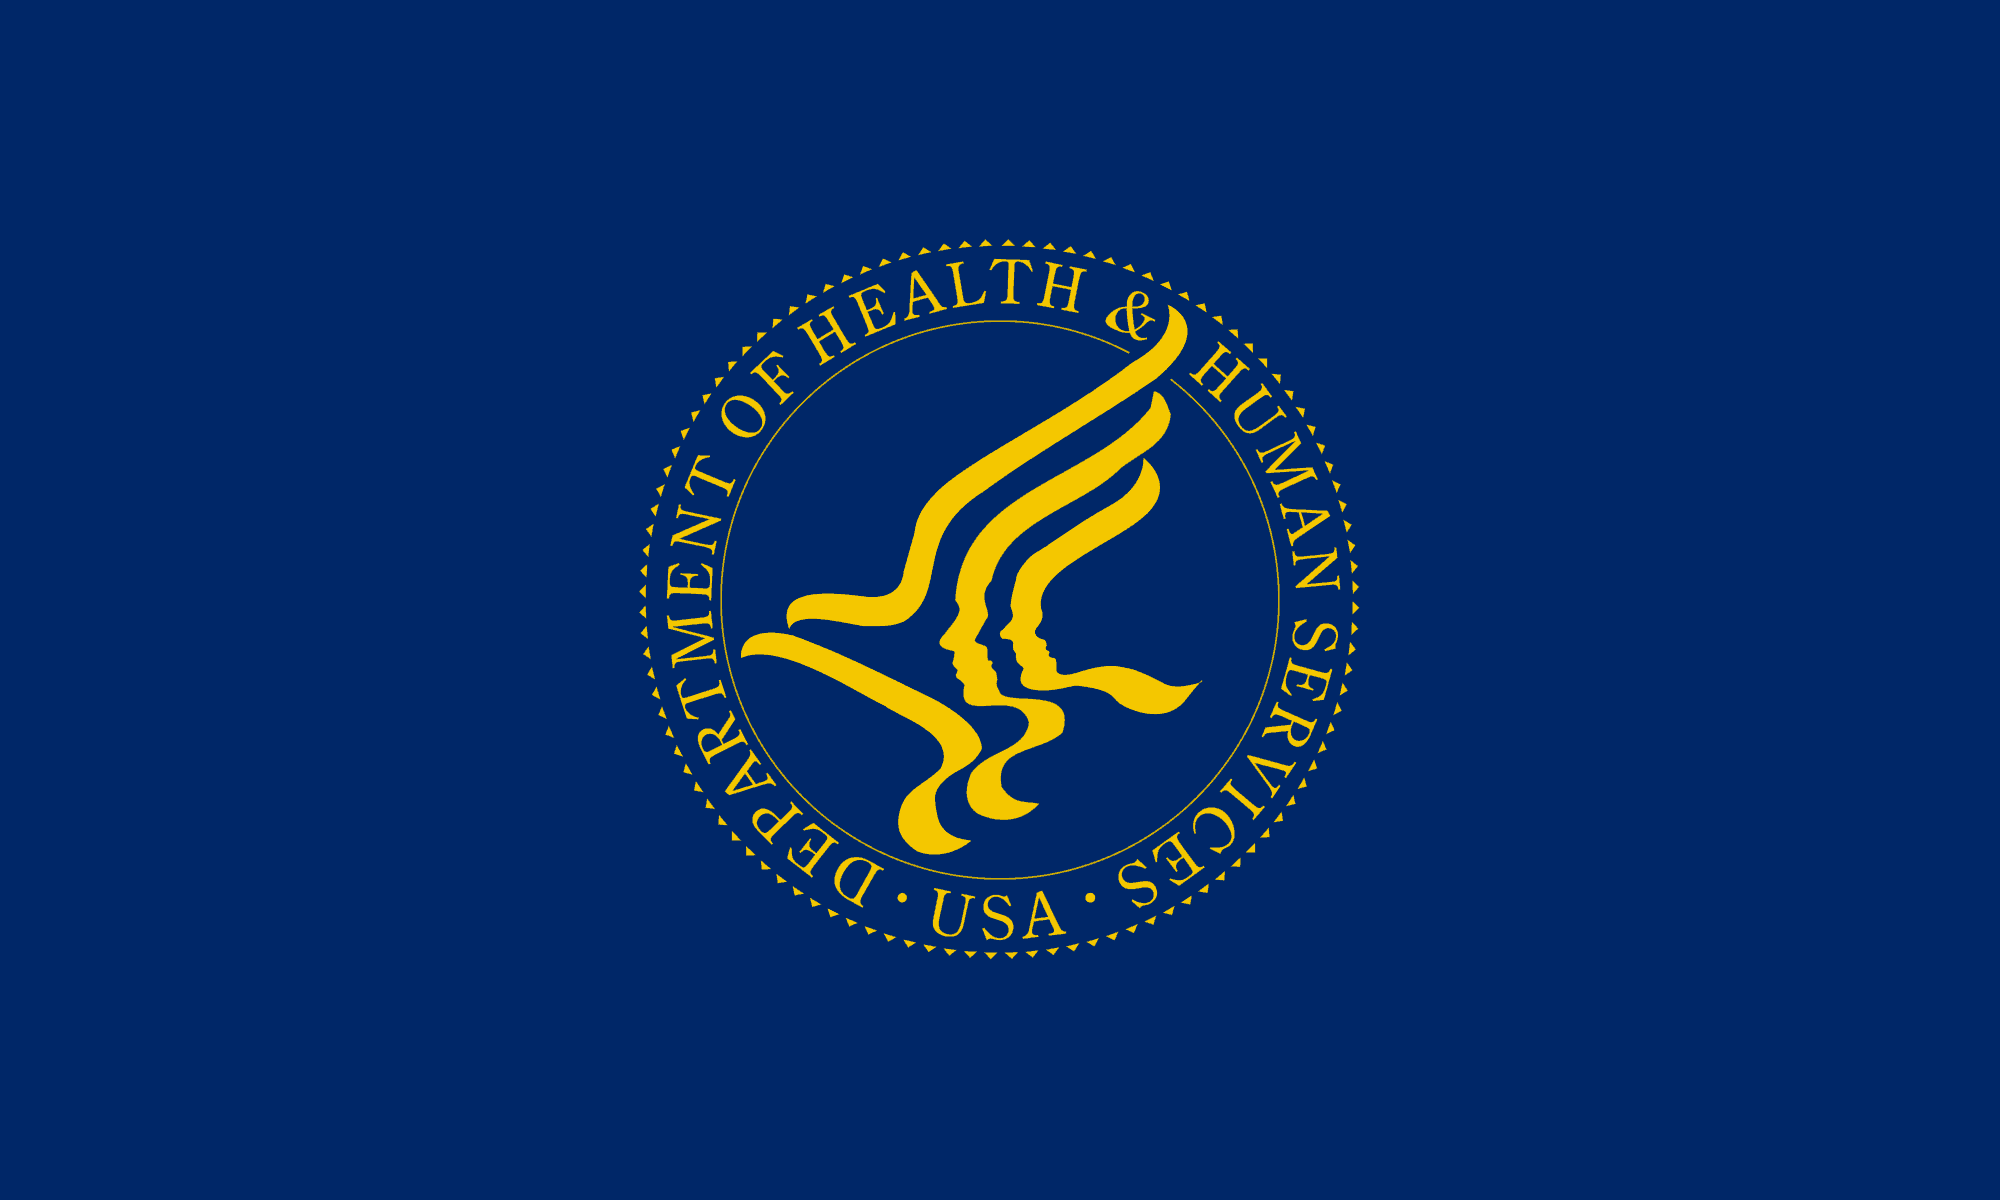 flag of the united states department of health and human services